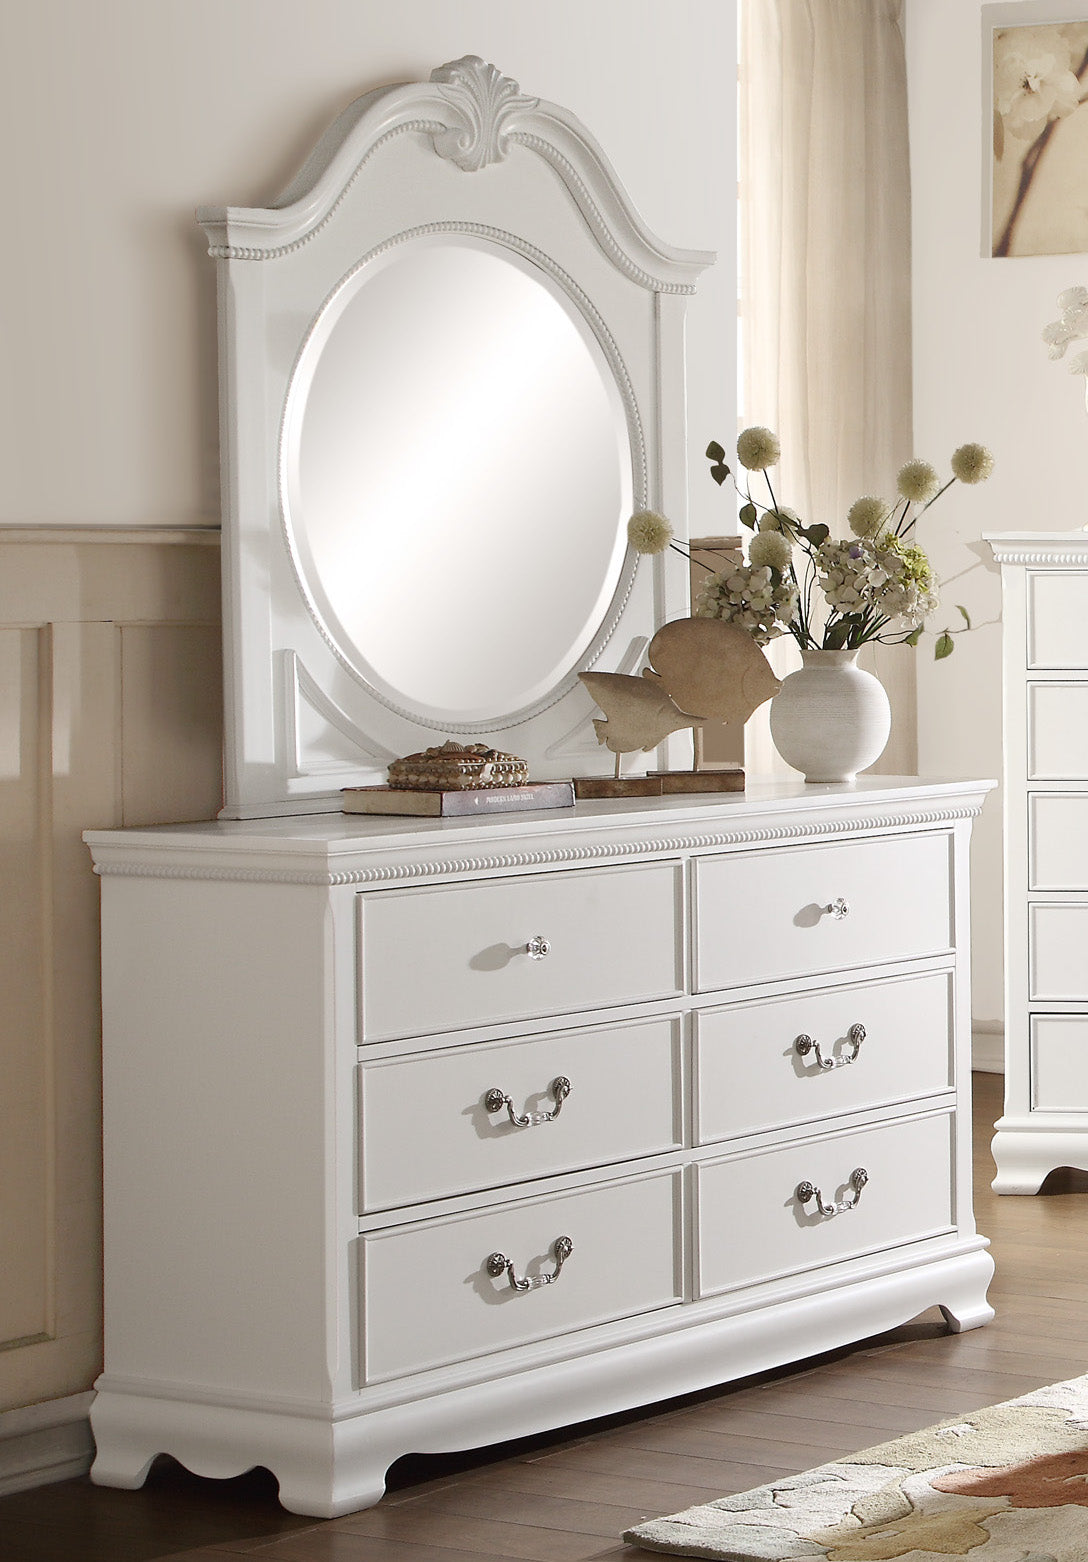 Labrant Girls Cottage Dresser Mirror In White The Furniture Space